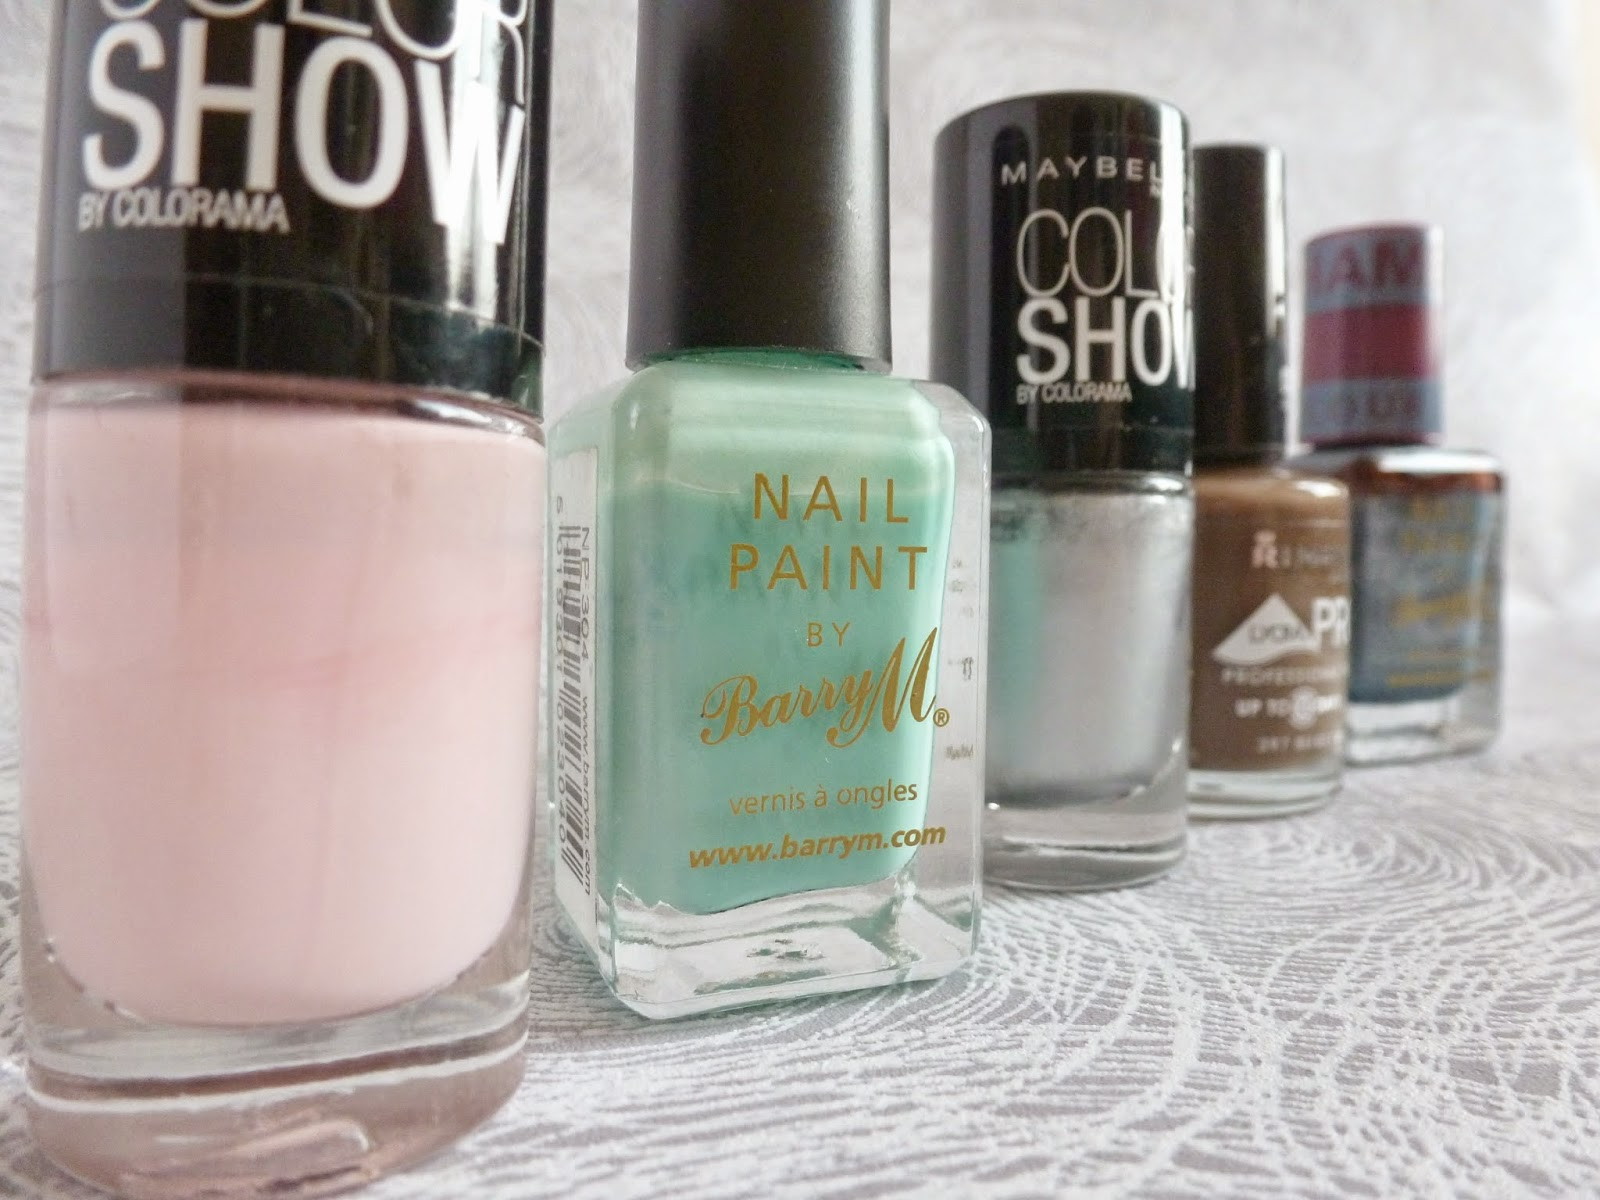 Nail varnishes in a row. Maybelline colour show in the colours 107 watery waste and 77 nebline. Rimmel London's lycra pro in 297 beige babe. Barry M in 304 mint green. Barry M chameleon range in 331 chameleon blue